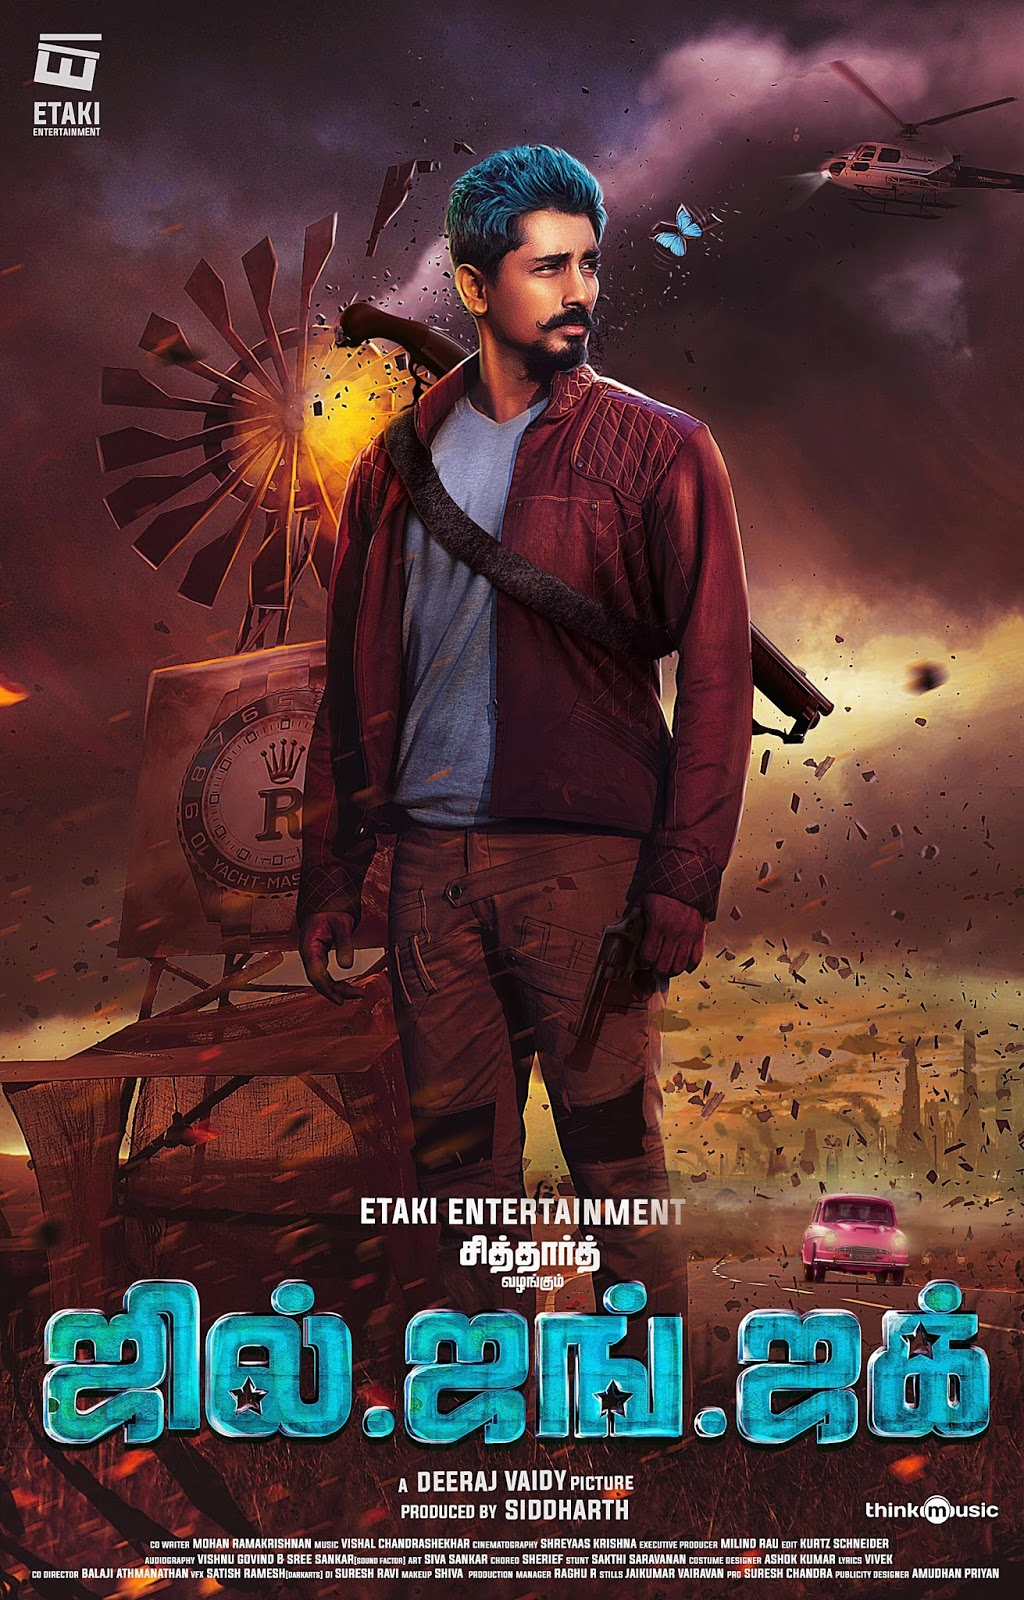 Announcement: Watch Jil Jung Juk (2016) DVDScr Tamil Full Movie Watch Online Free Download